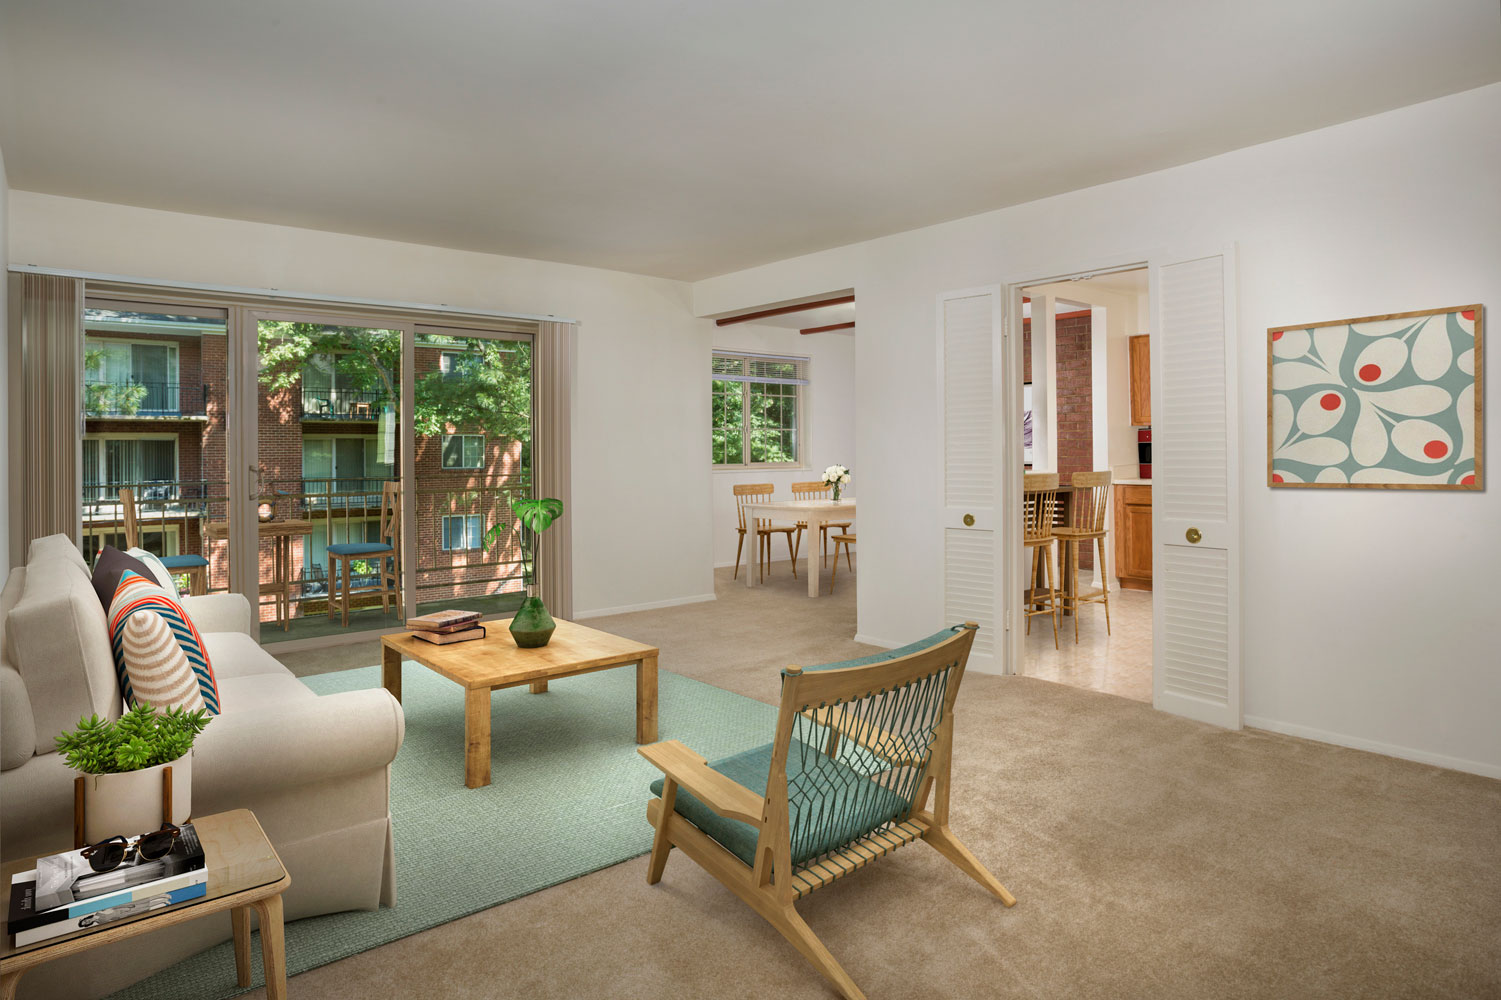 Spacious living area at Whitehall Square Apartments in Suitland, MD